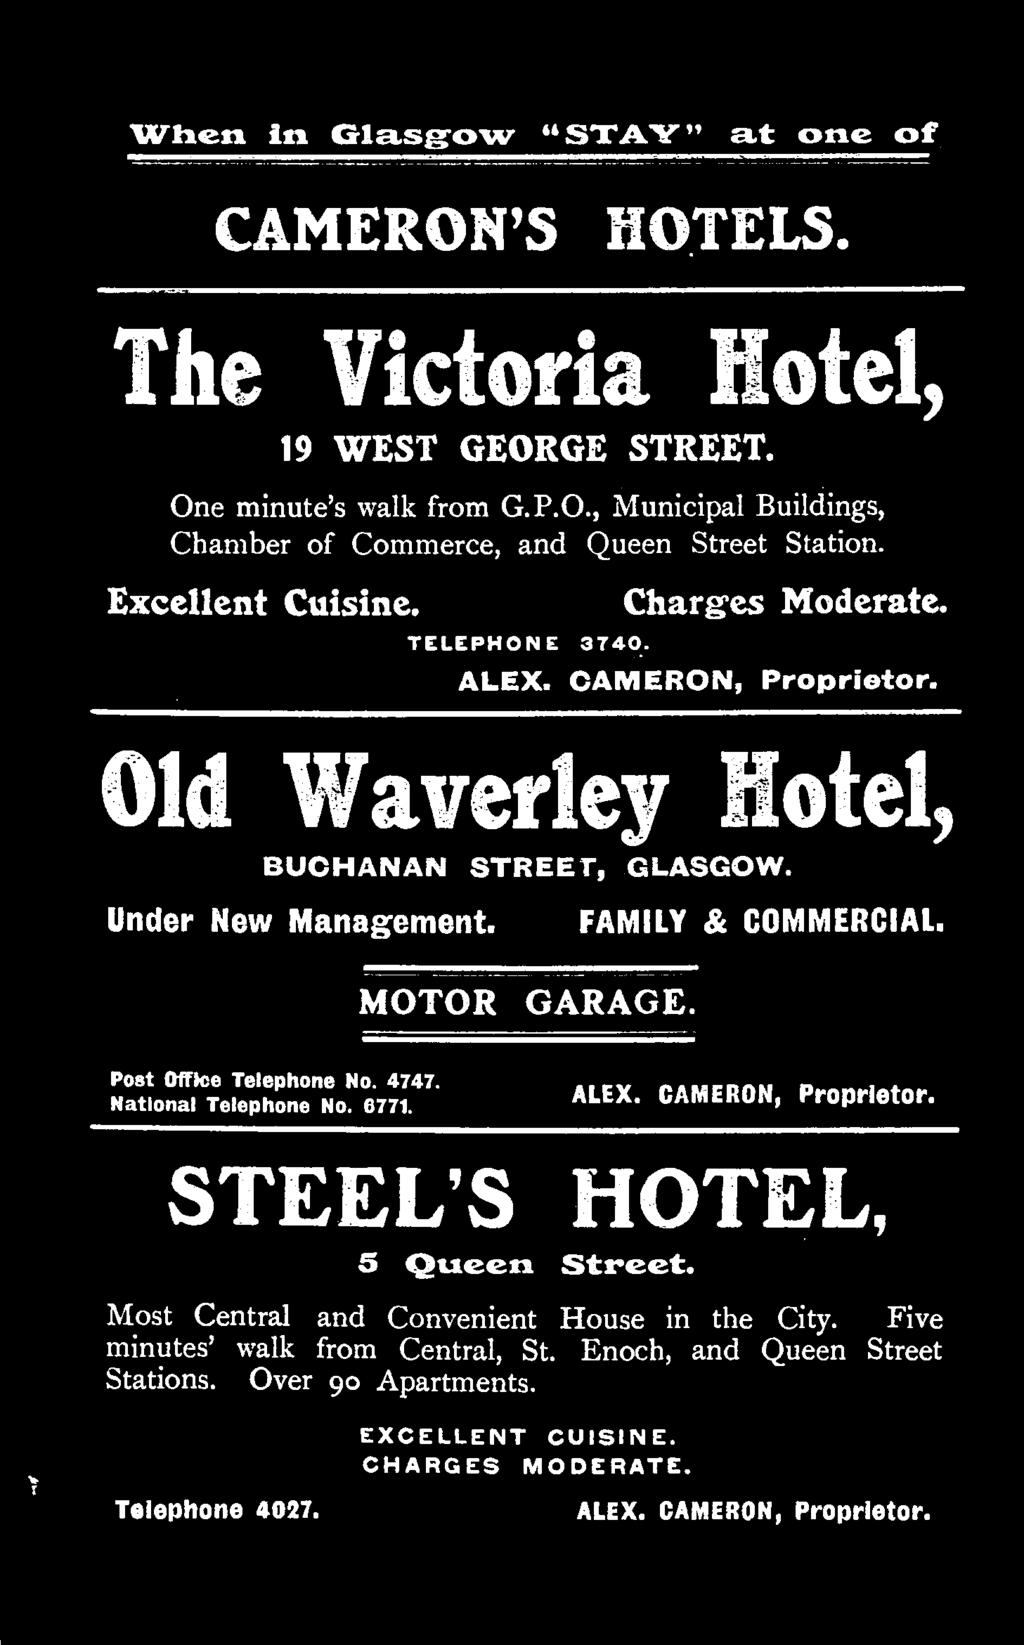 CAMERON, Proprietor. STEEL S HOTEL, 5 Queen Street. Most Central and Convenient House in the City.